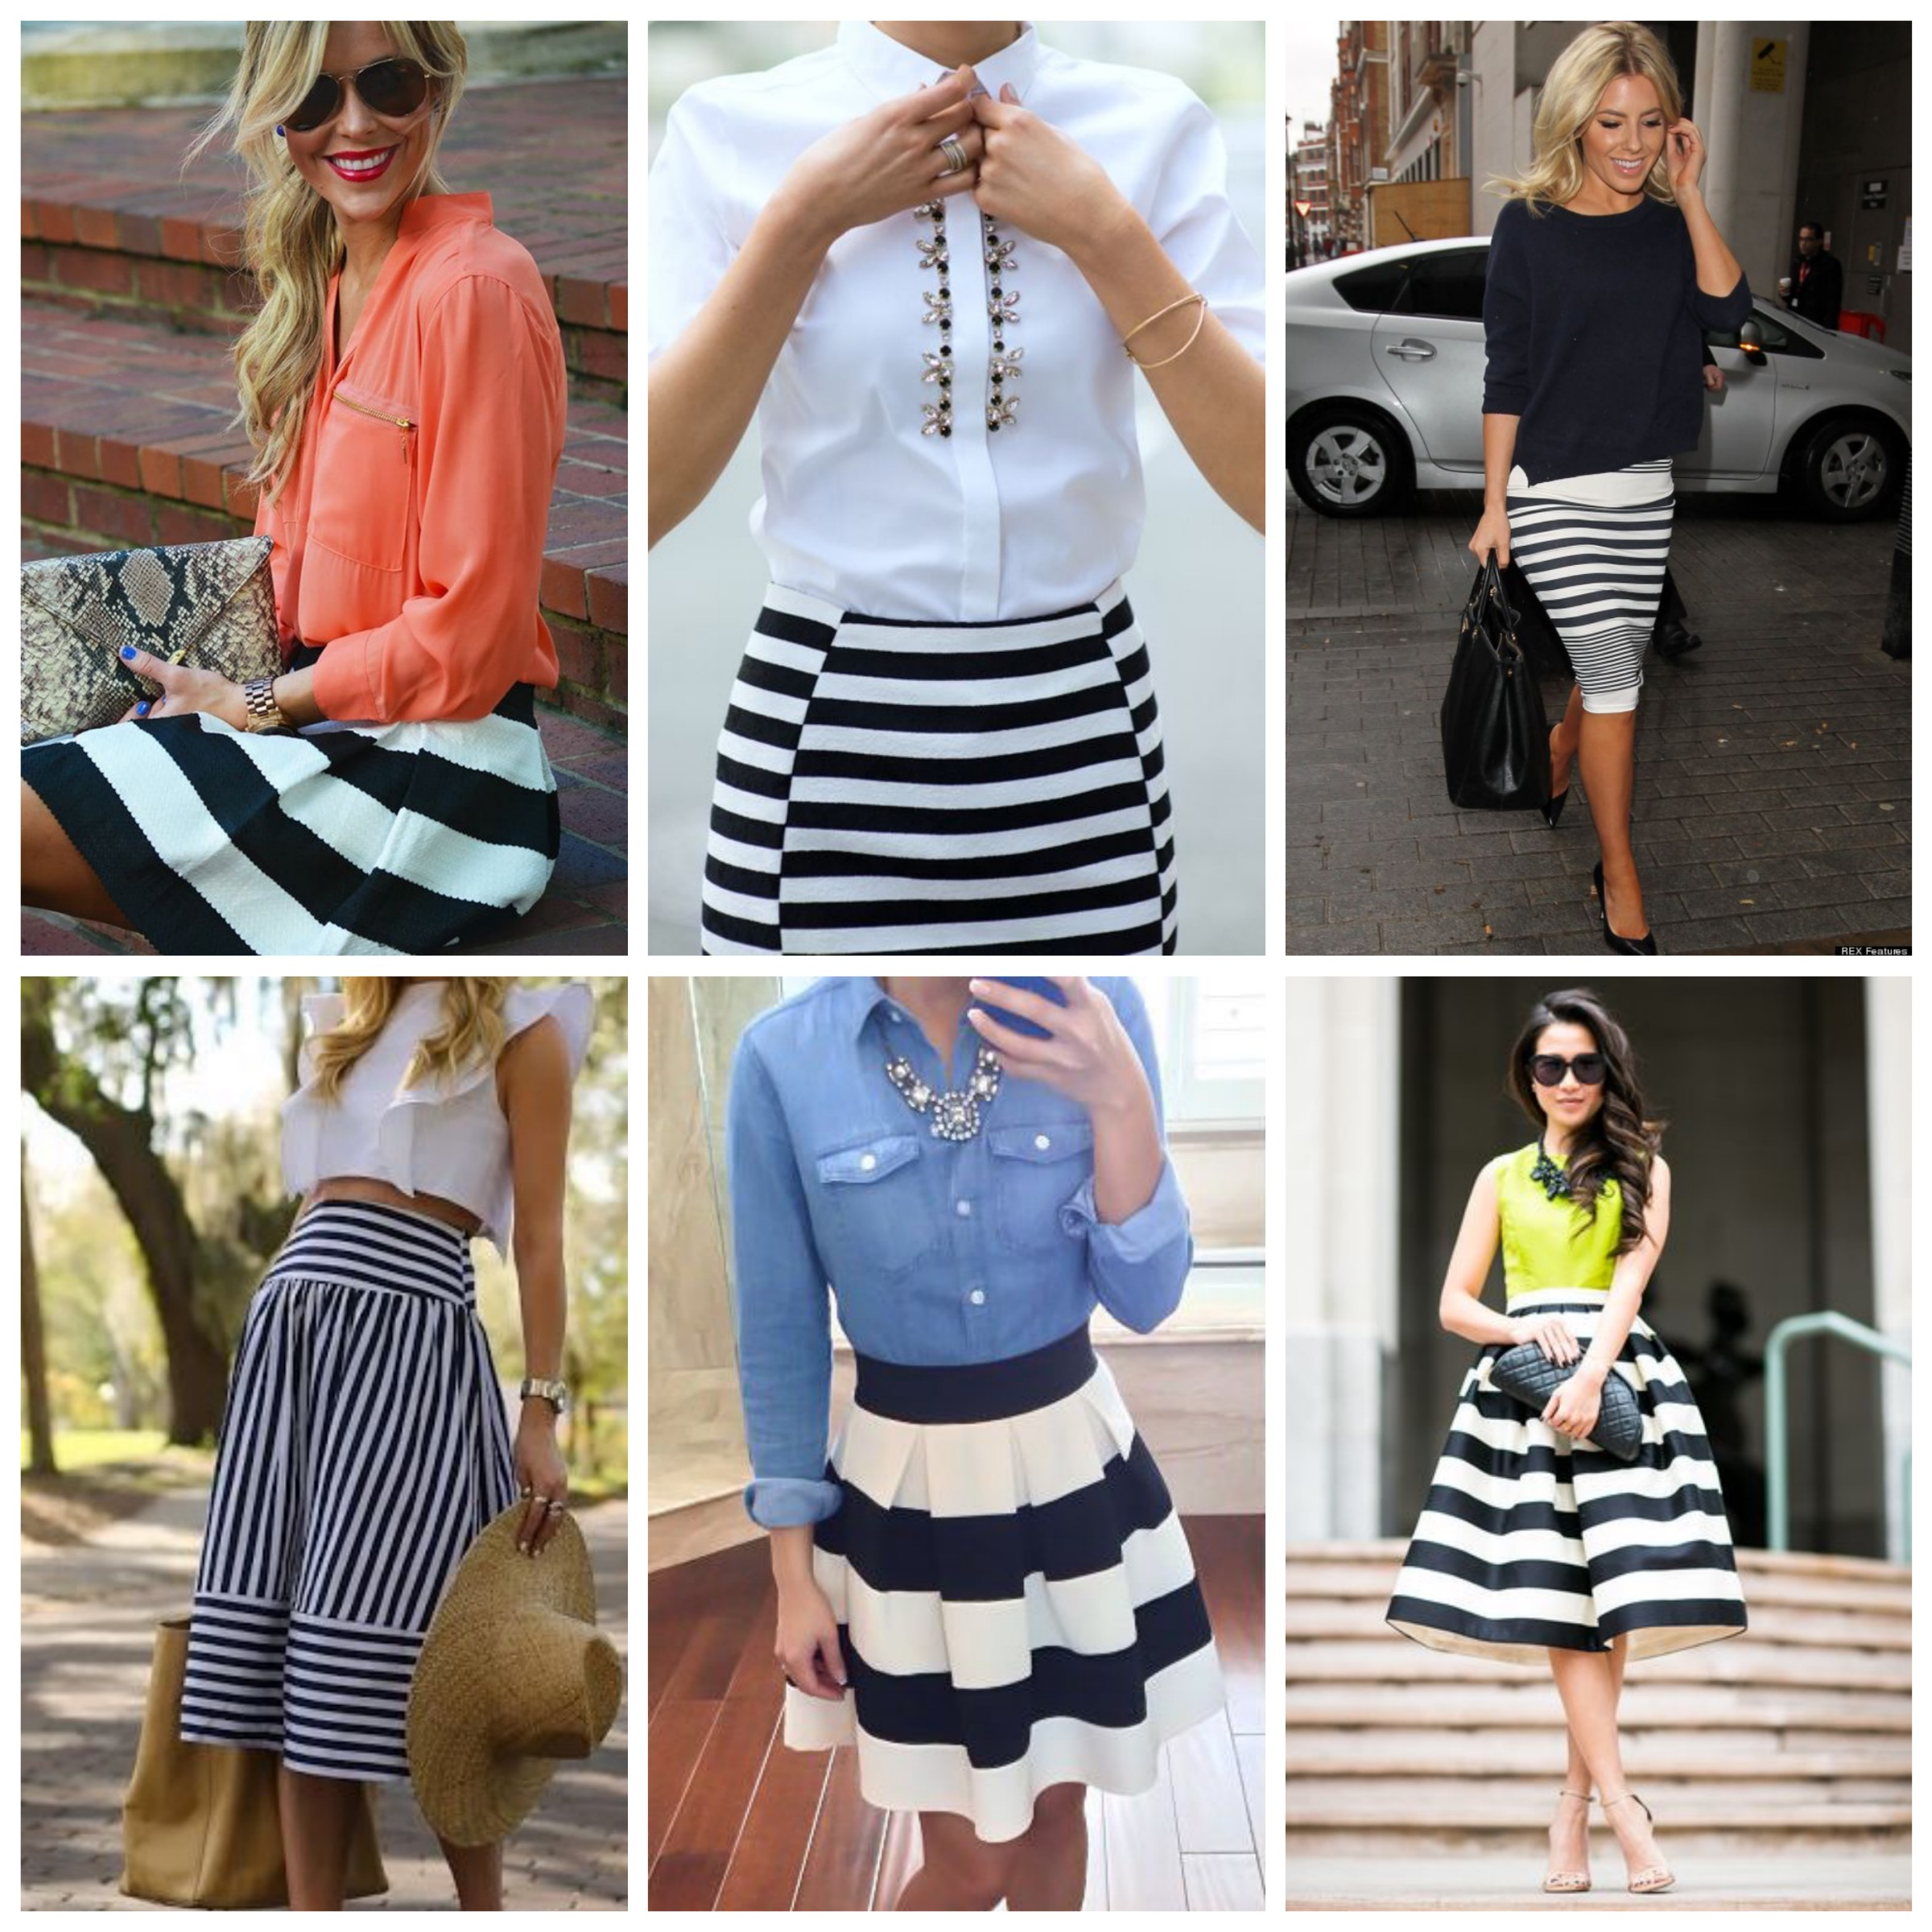 Dare the striped skirt